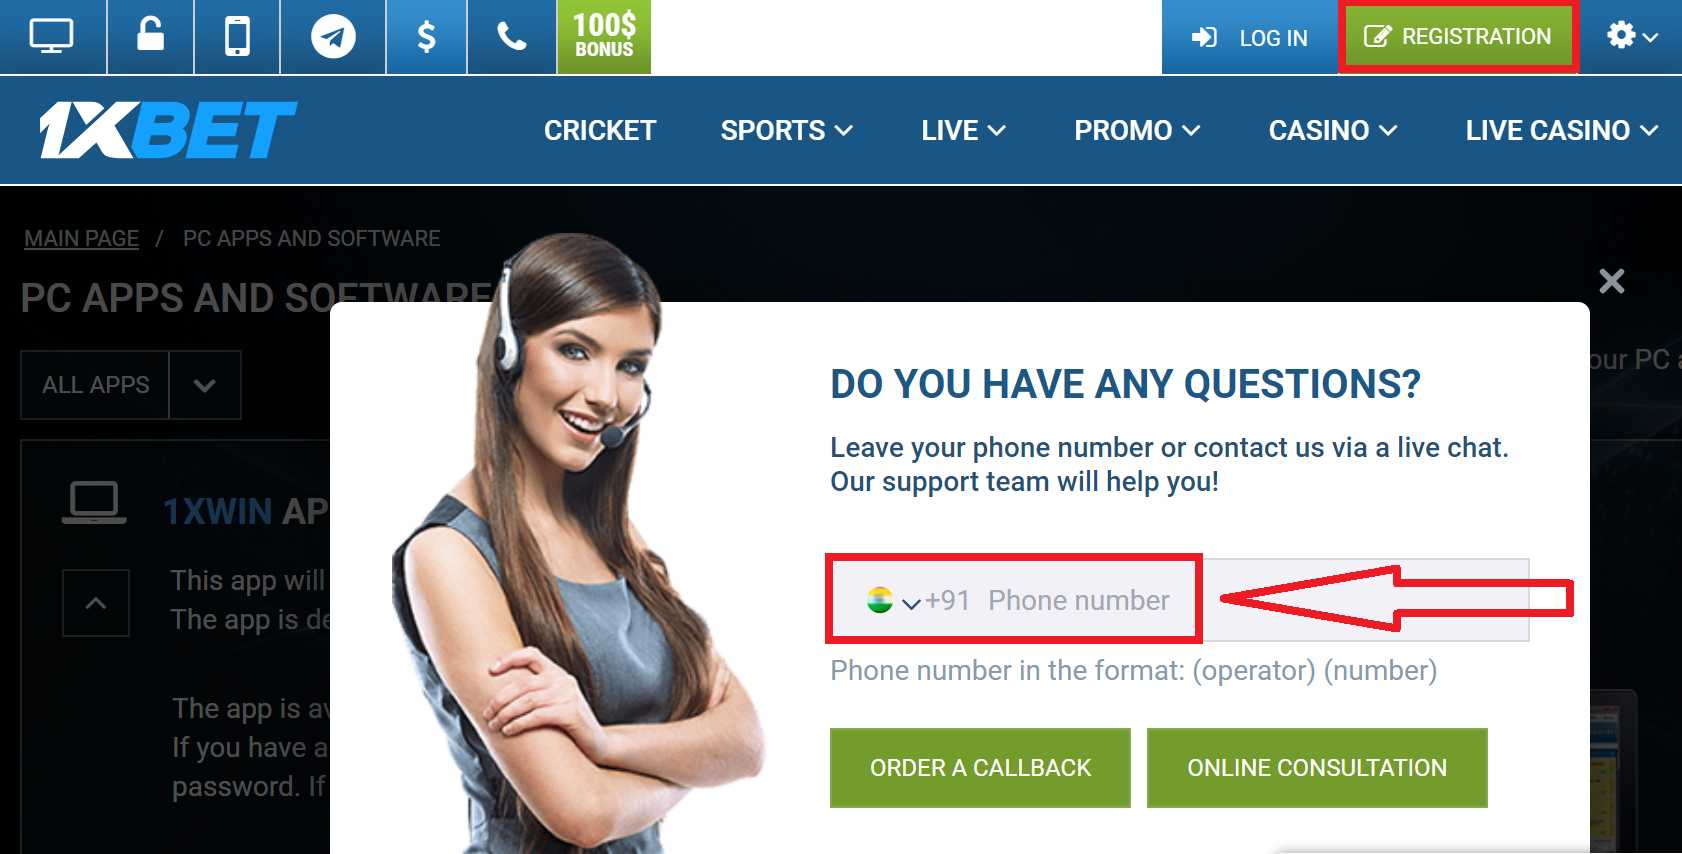 1xBet Login Problems - What Should You Do?